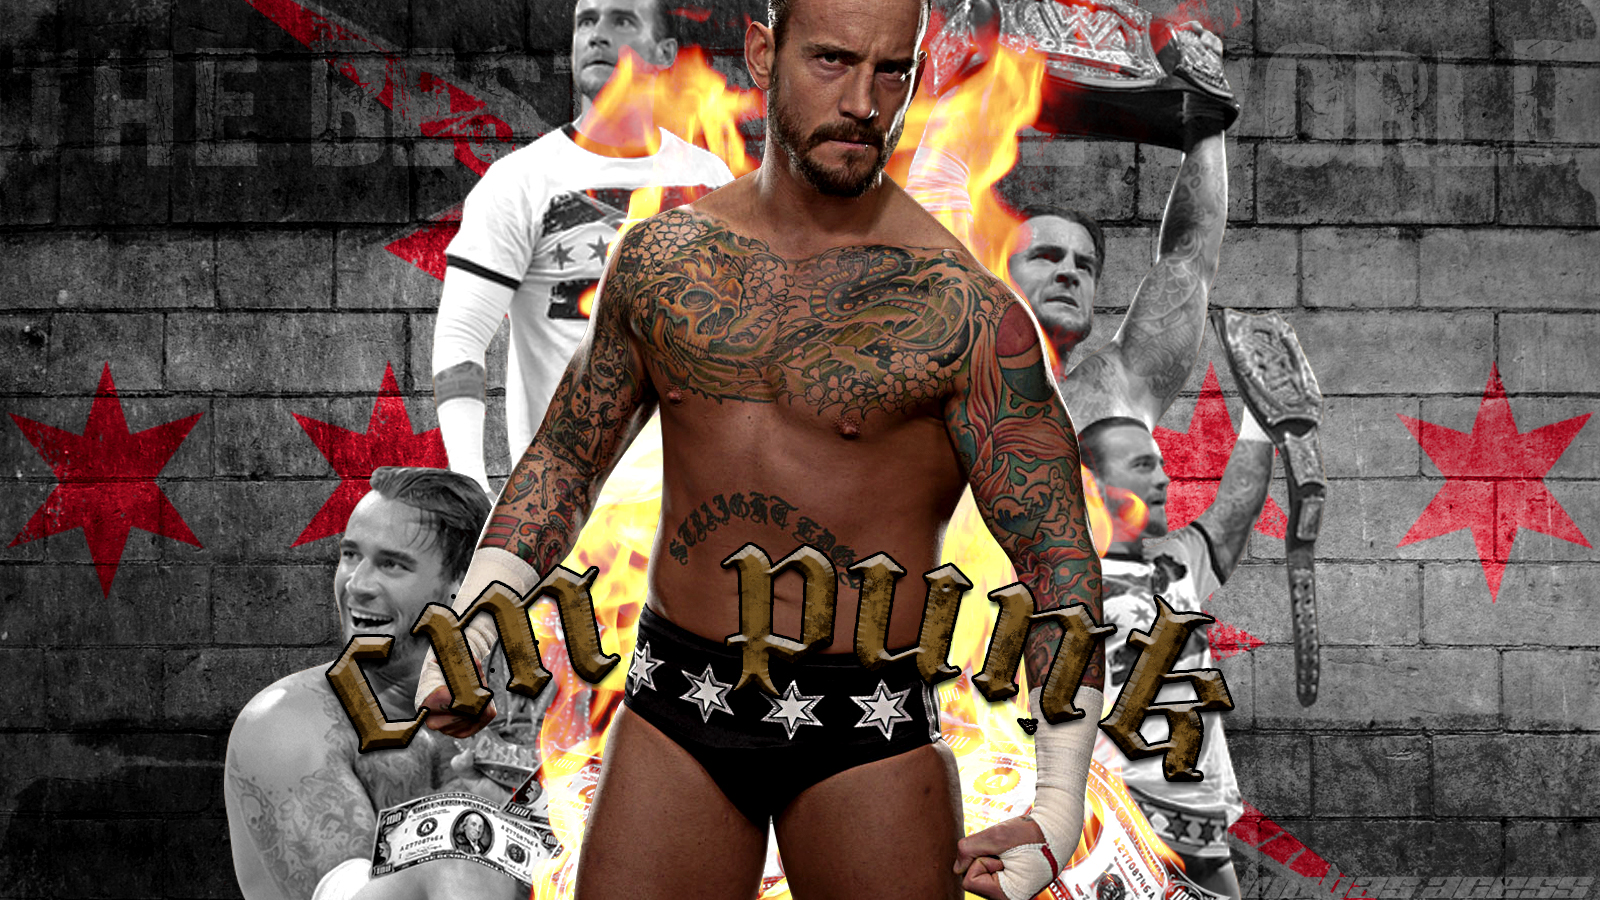 wallpaperdecorhd: wallpaper of cm punk 2012 | wallpaperdecorhd